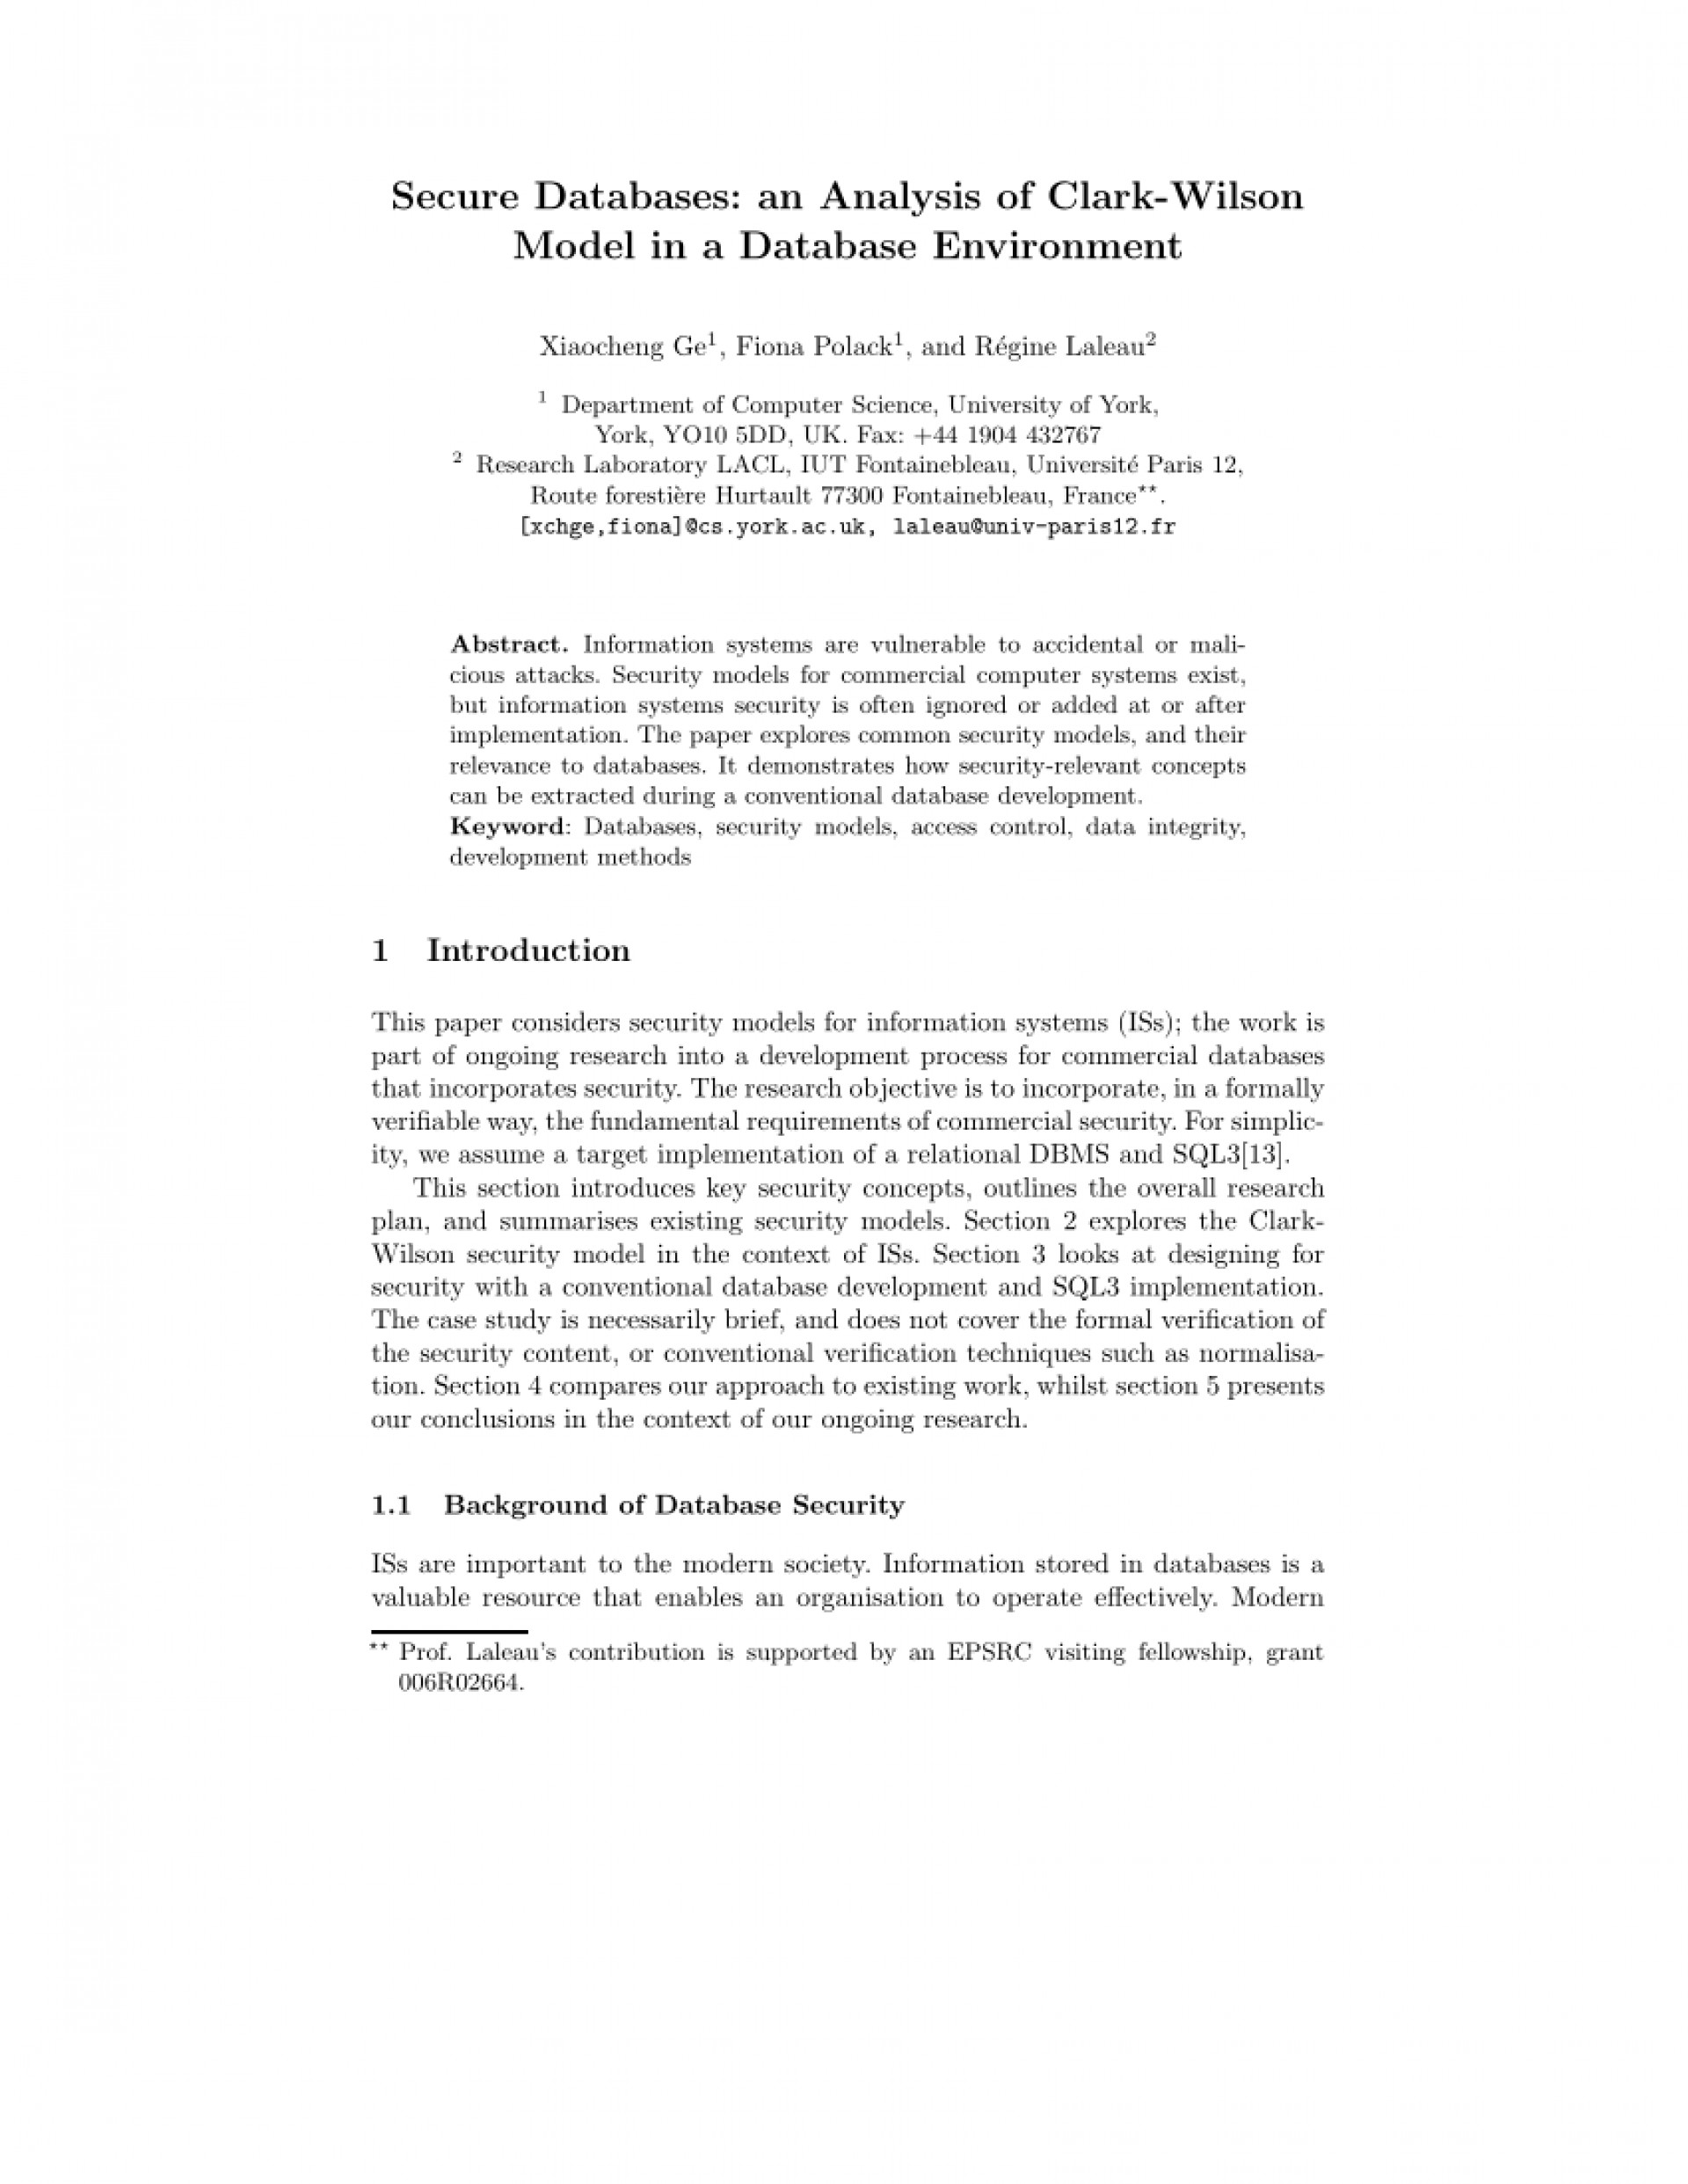 006 Database Security Research Paper Abstract Fascinating 1920